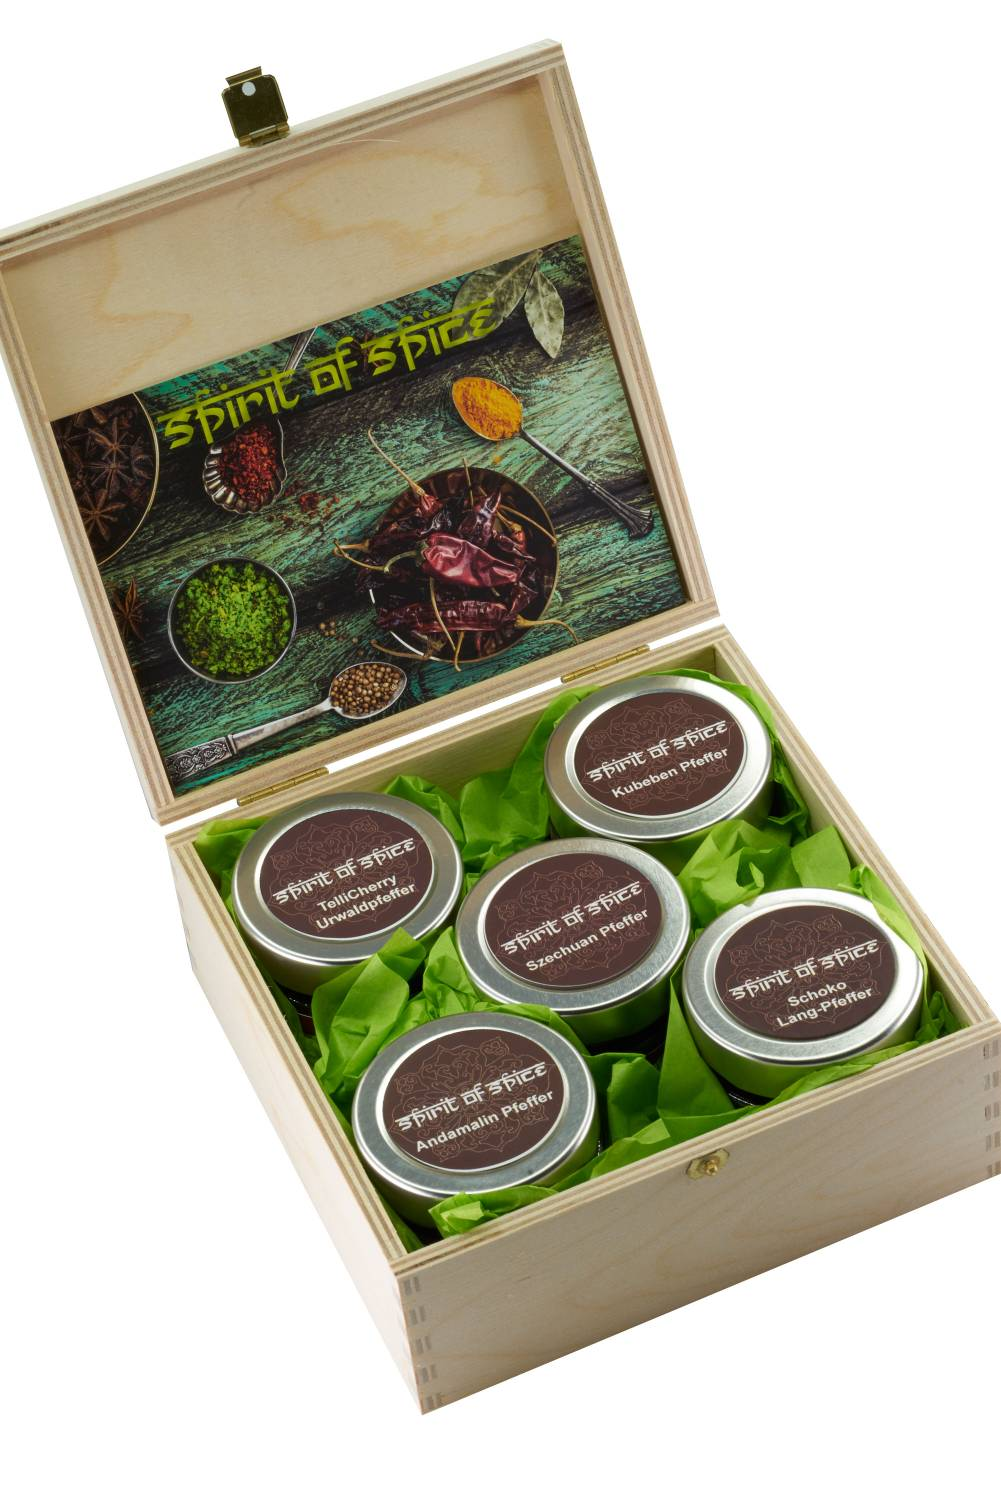 Edles Pfeffer-Set MEDIUM von Spirit of Spice